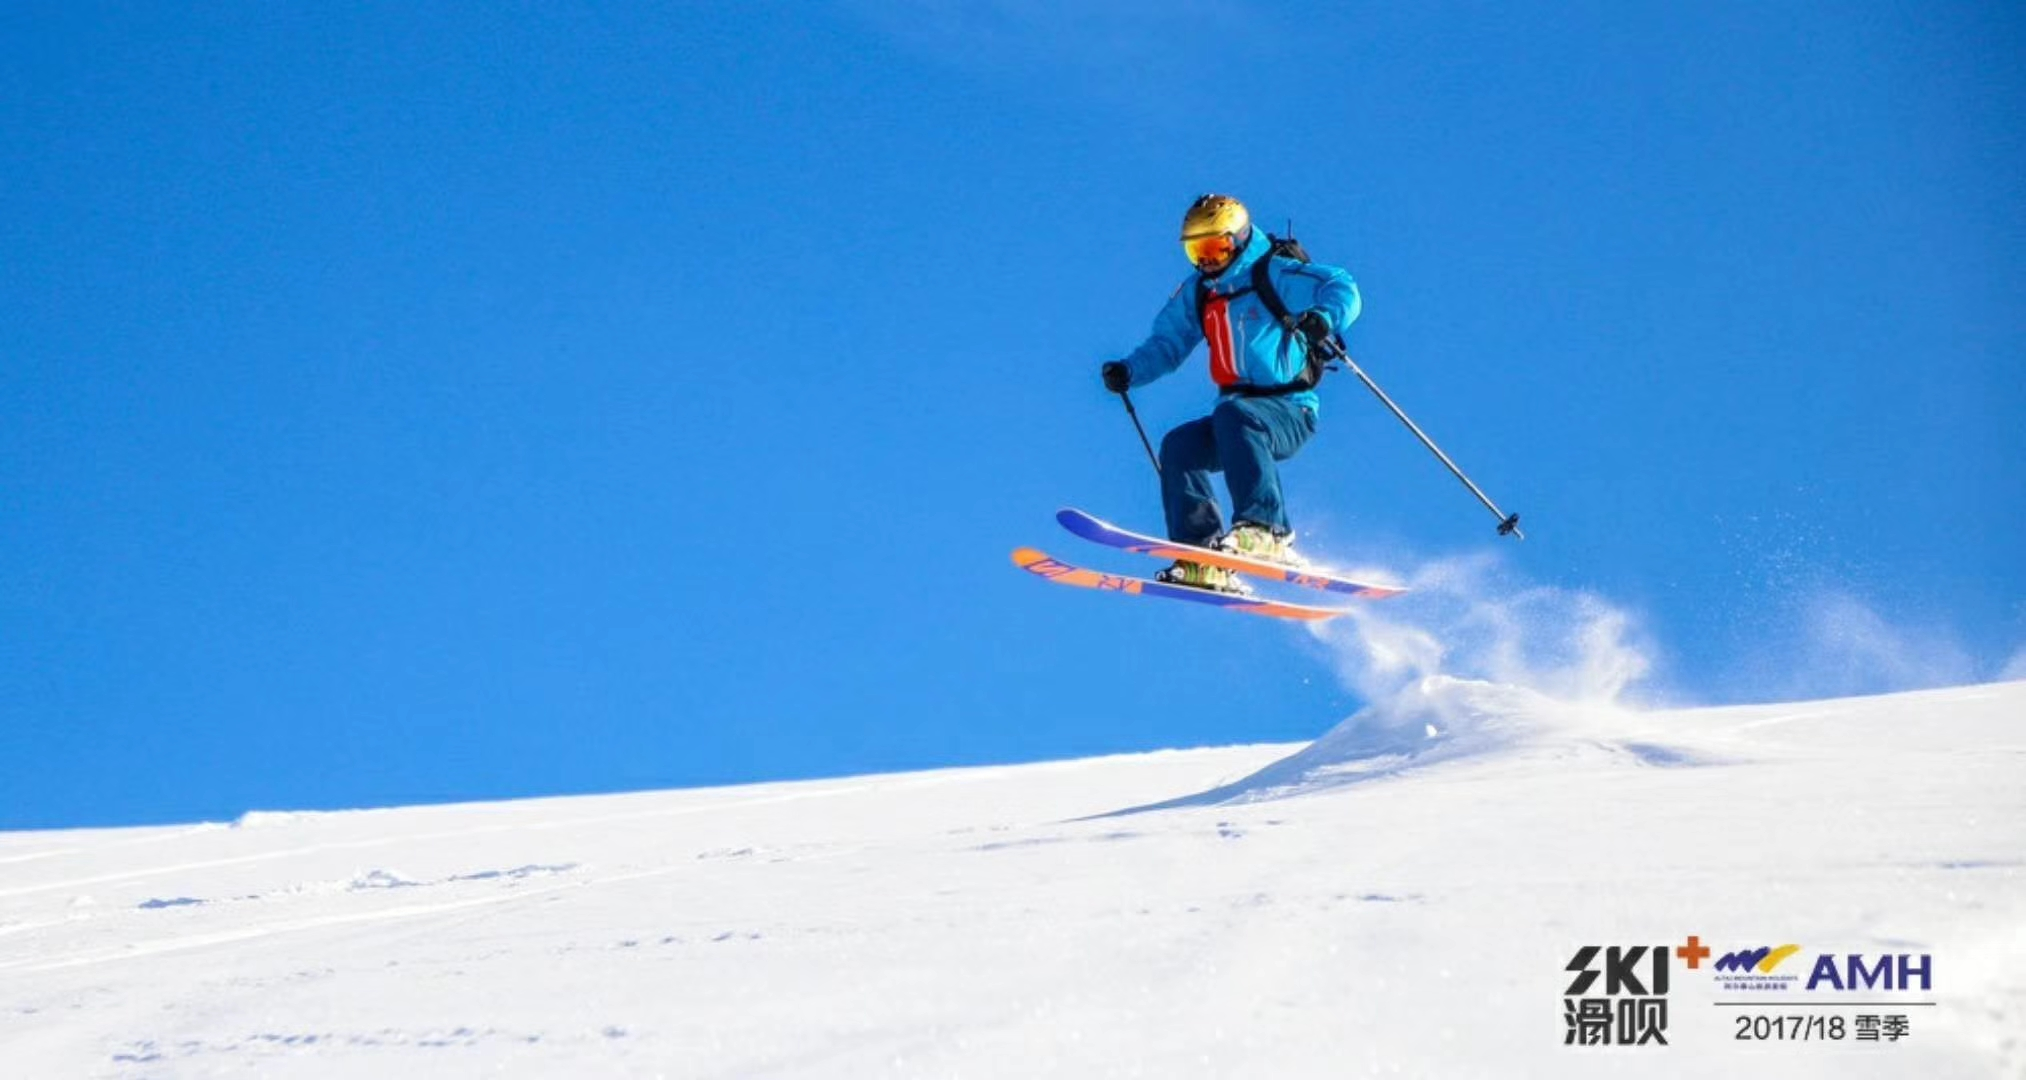 From sunshine to competition! This app makes your skiing experience perfect